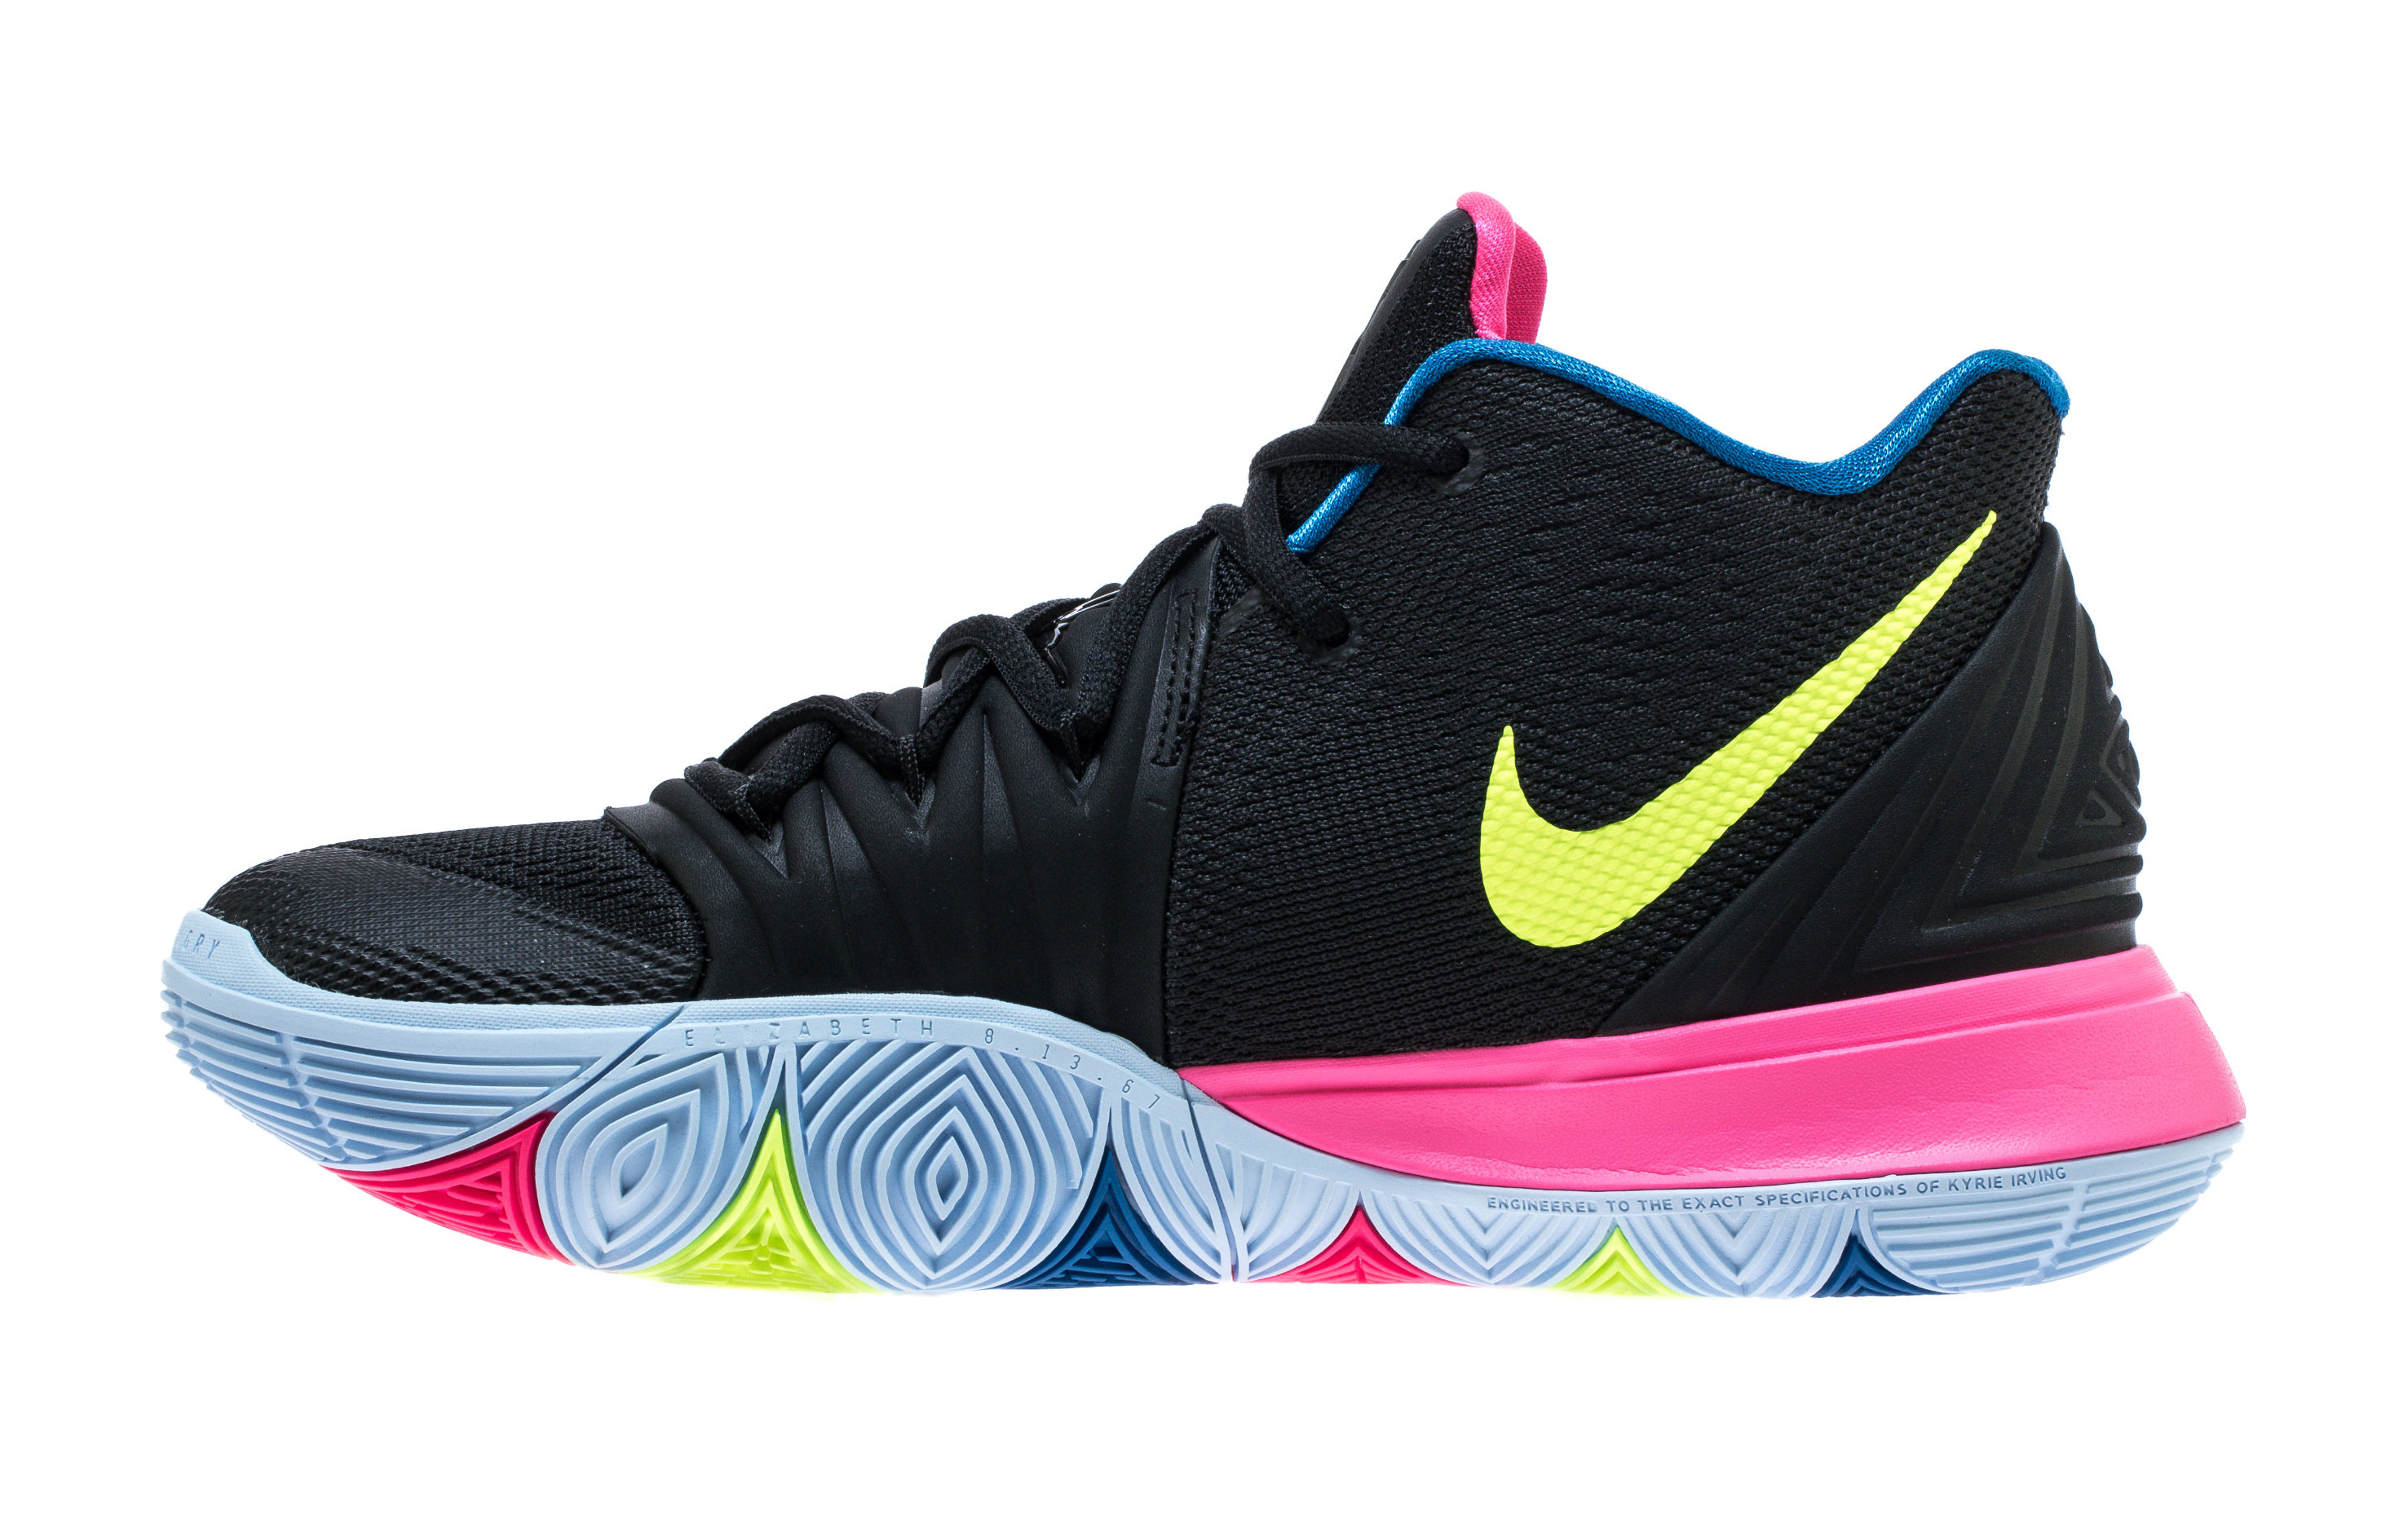 Release Date: Nike Kyrie 5 Just Do It